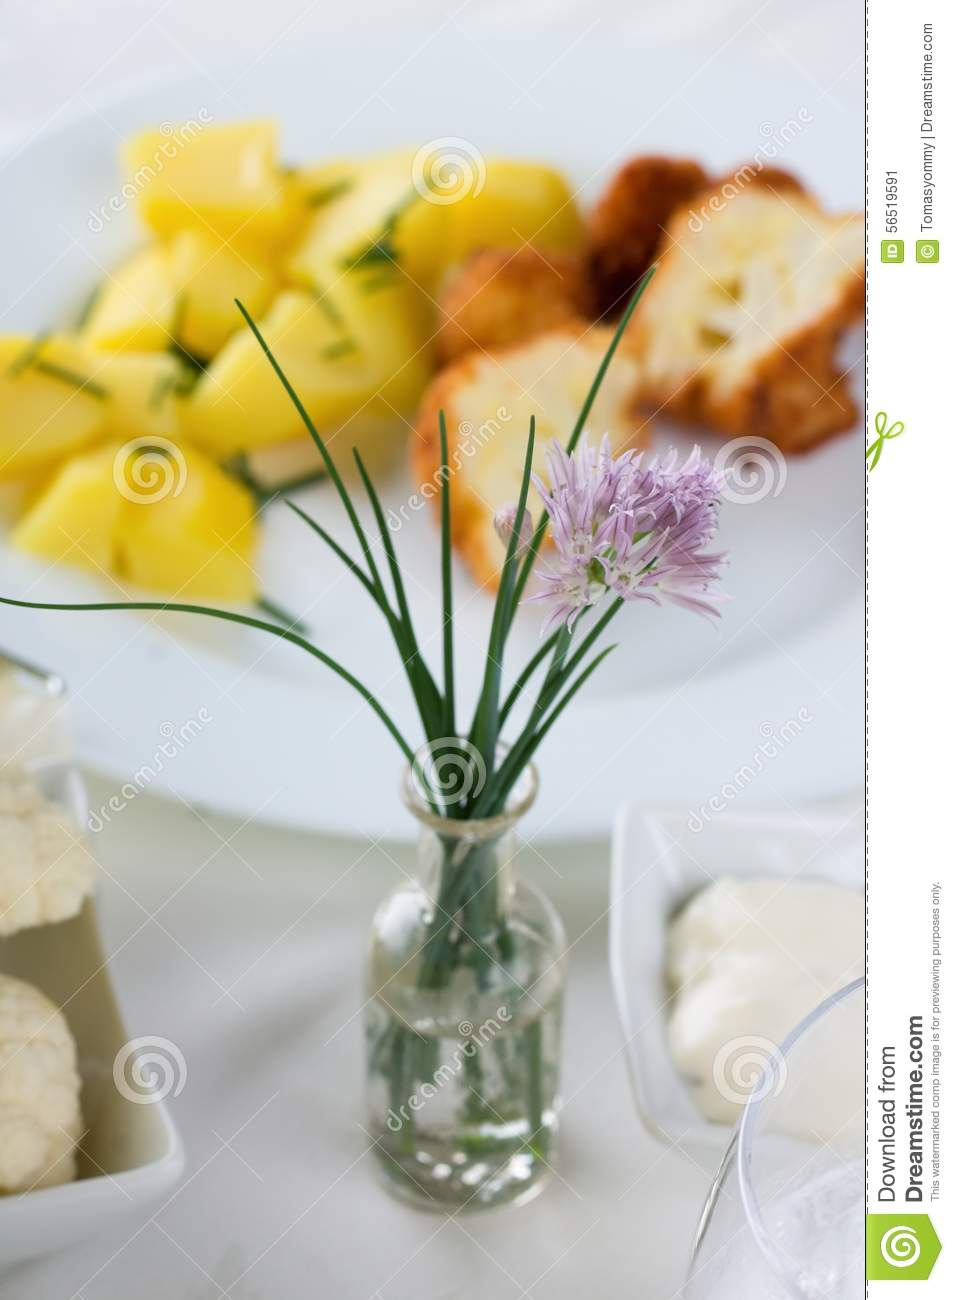 chive with lila bloom on a table with lunch stock photo image 56519591. Black Bedroom Furniture Sets. Home Design Ideas